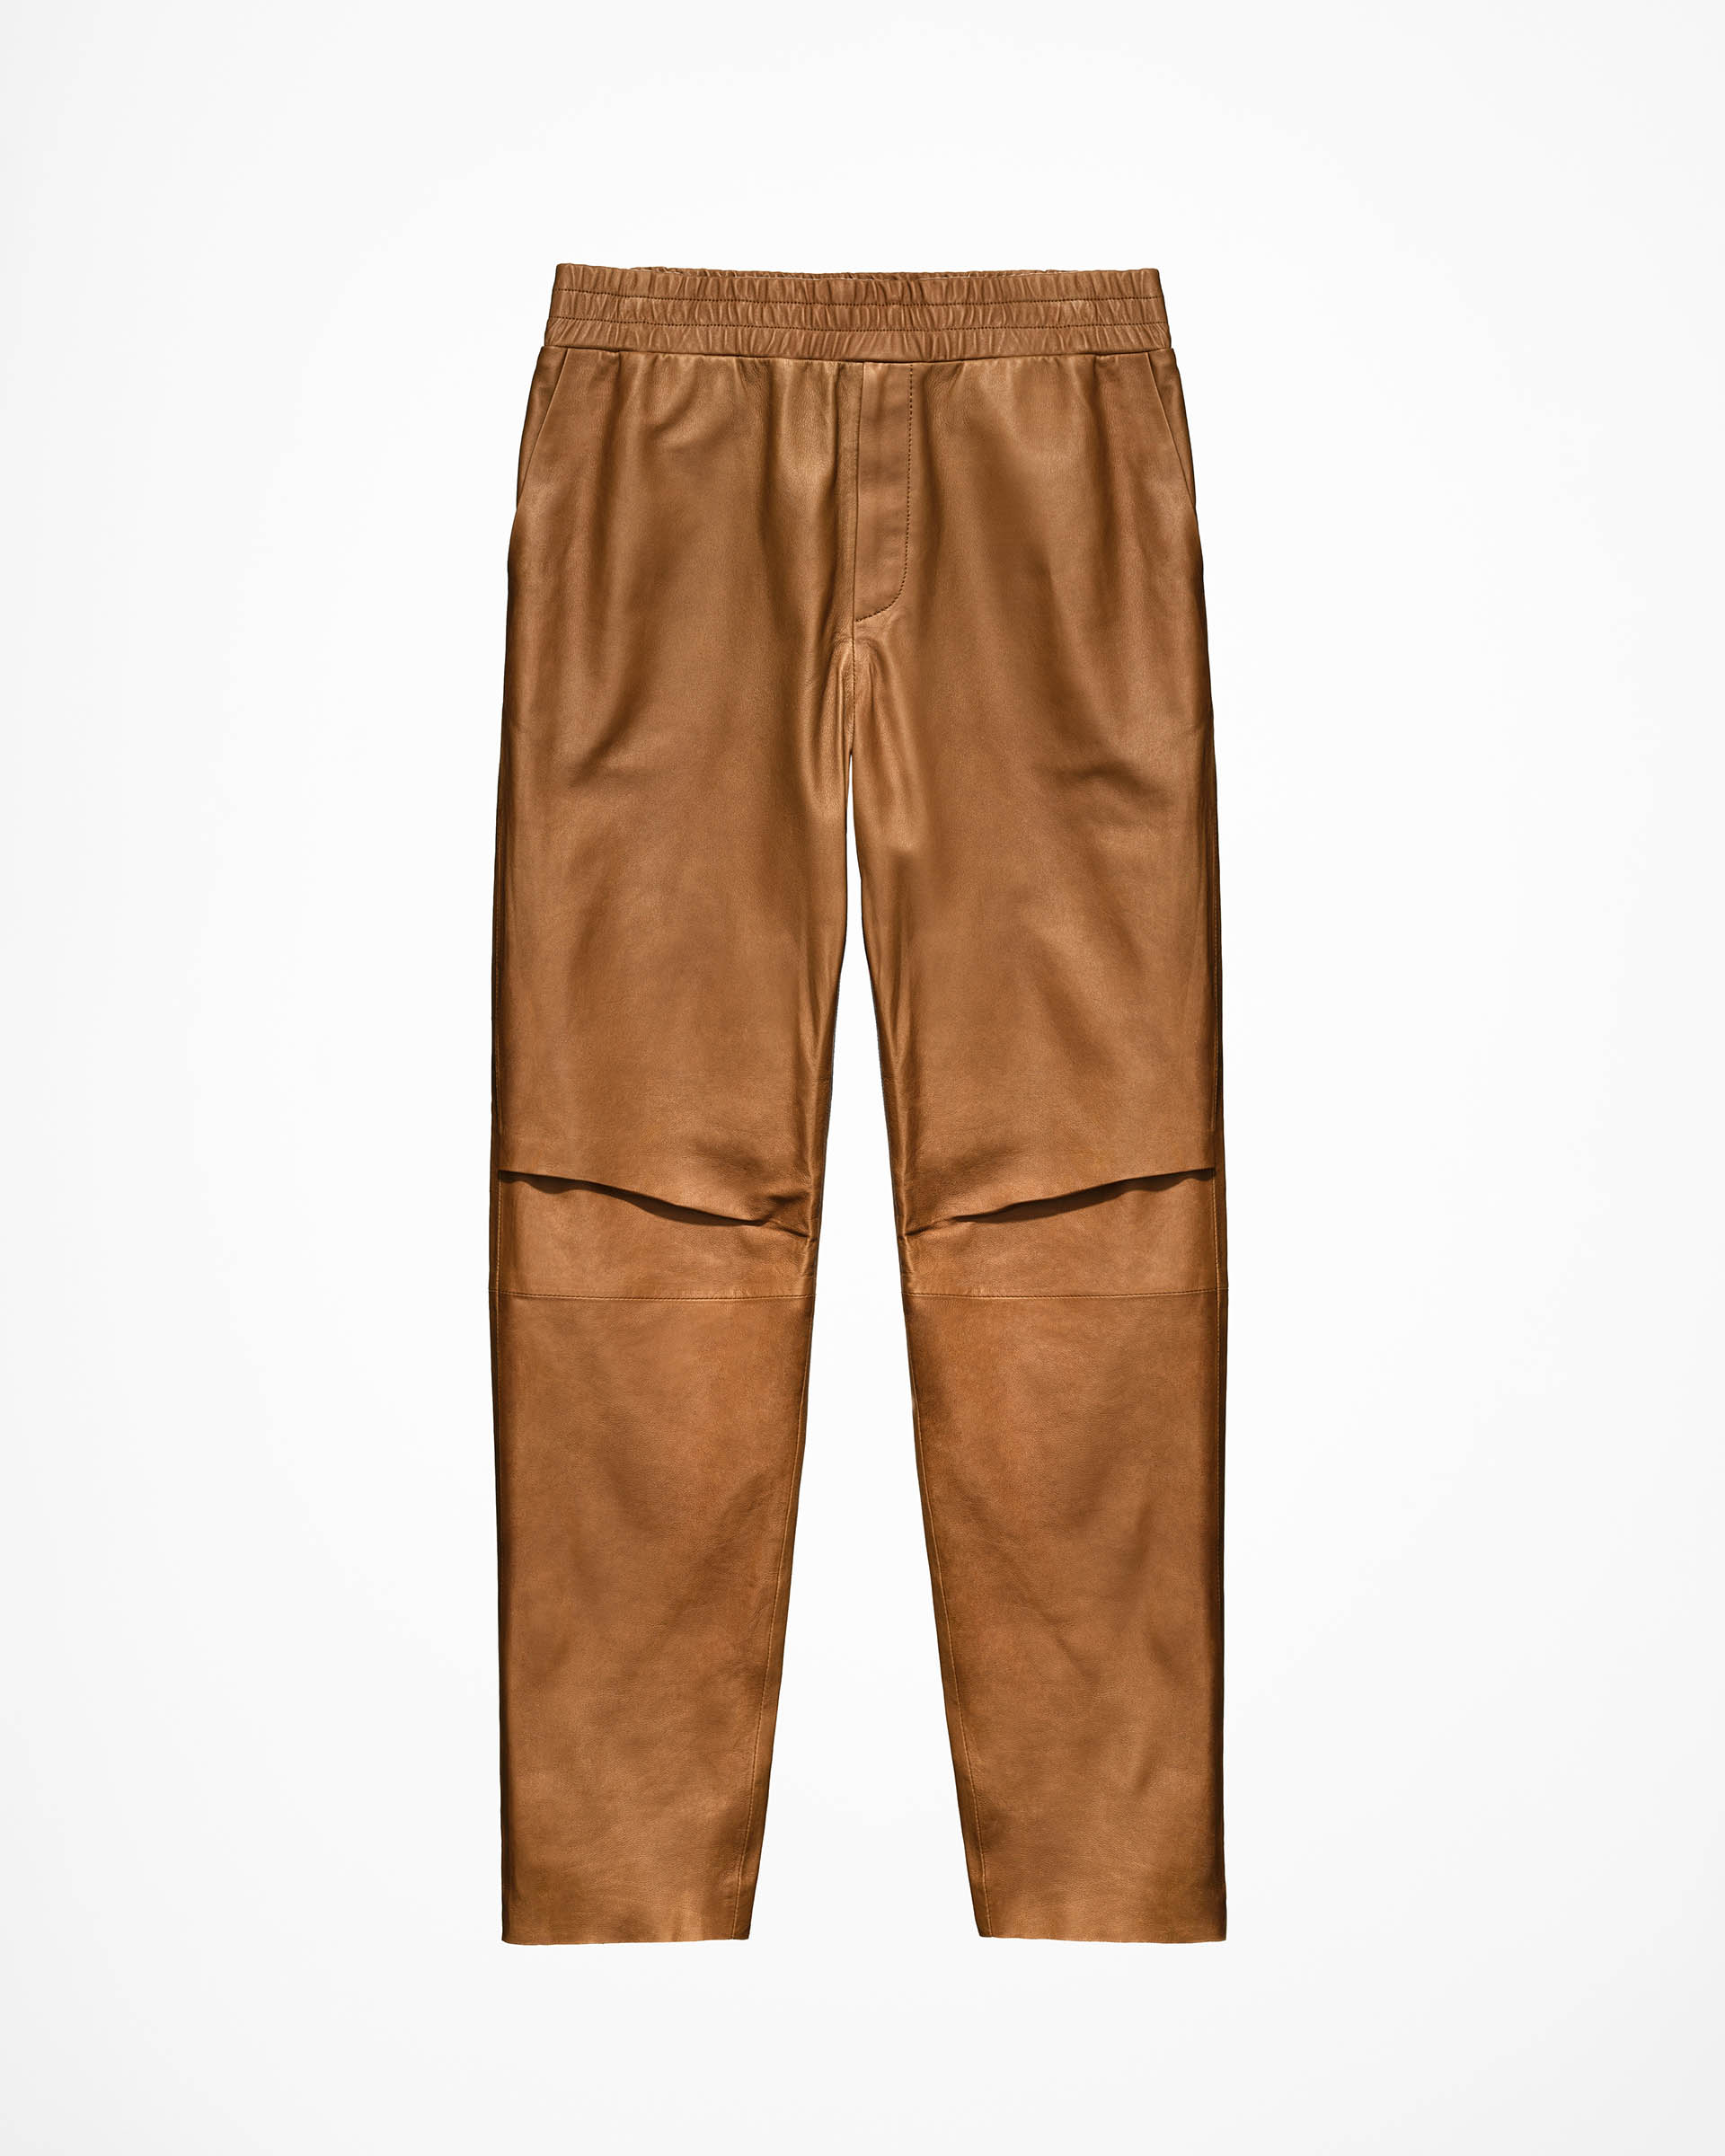 HM-Studio-Collection-Trixi_trousers_1b